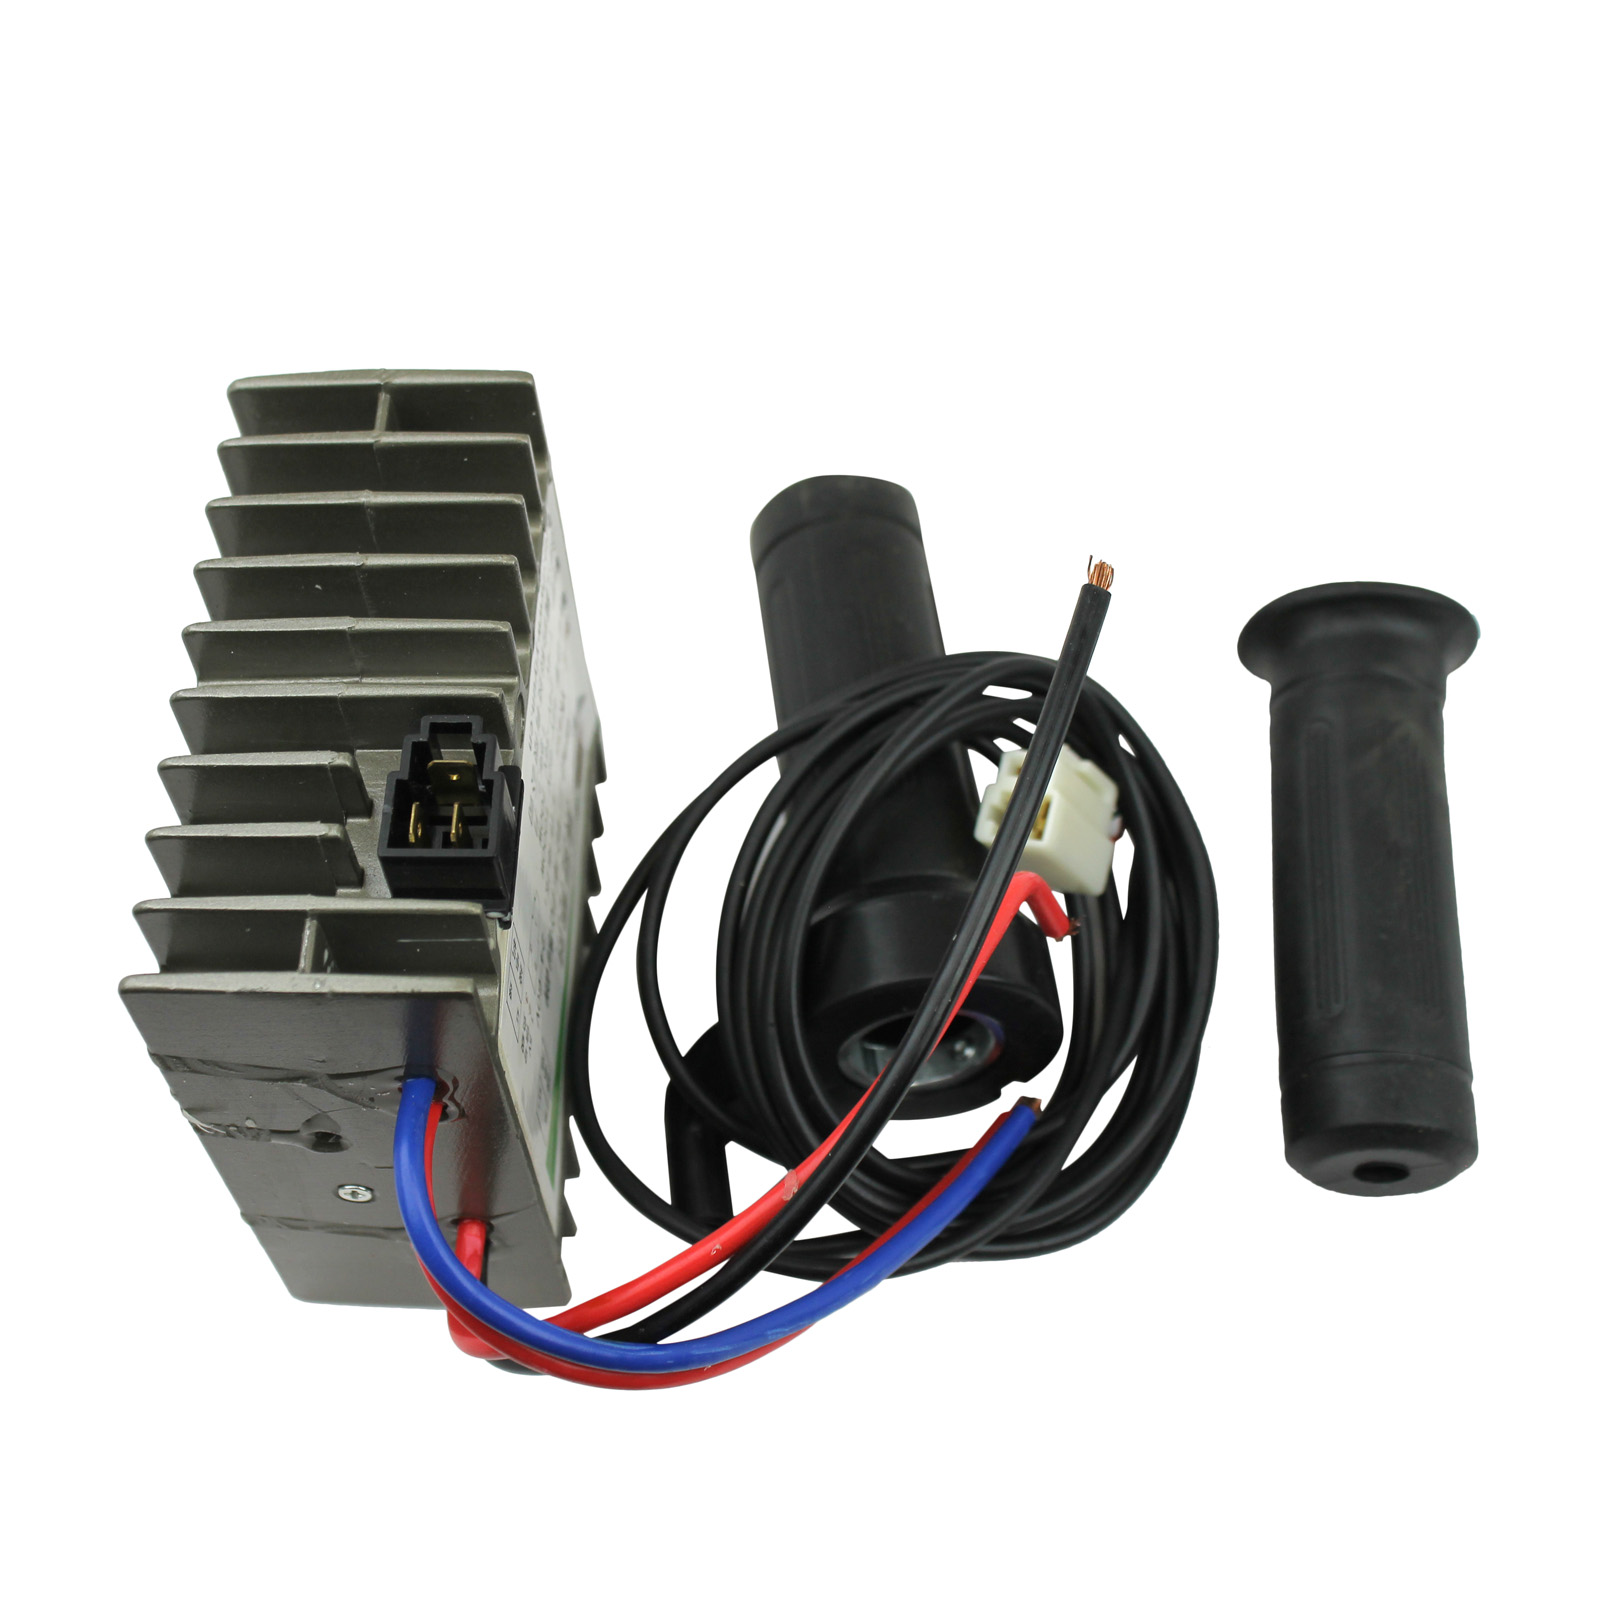 Controller, 24-60V 500-1000W Motor Brush for Electric Bike Bicycle ...